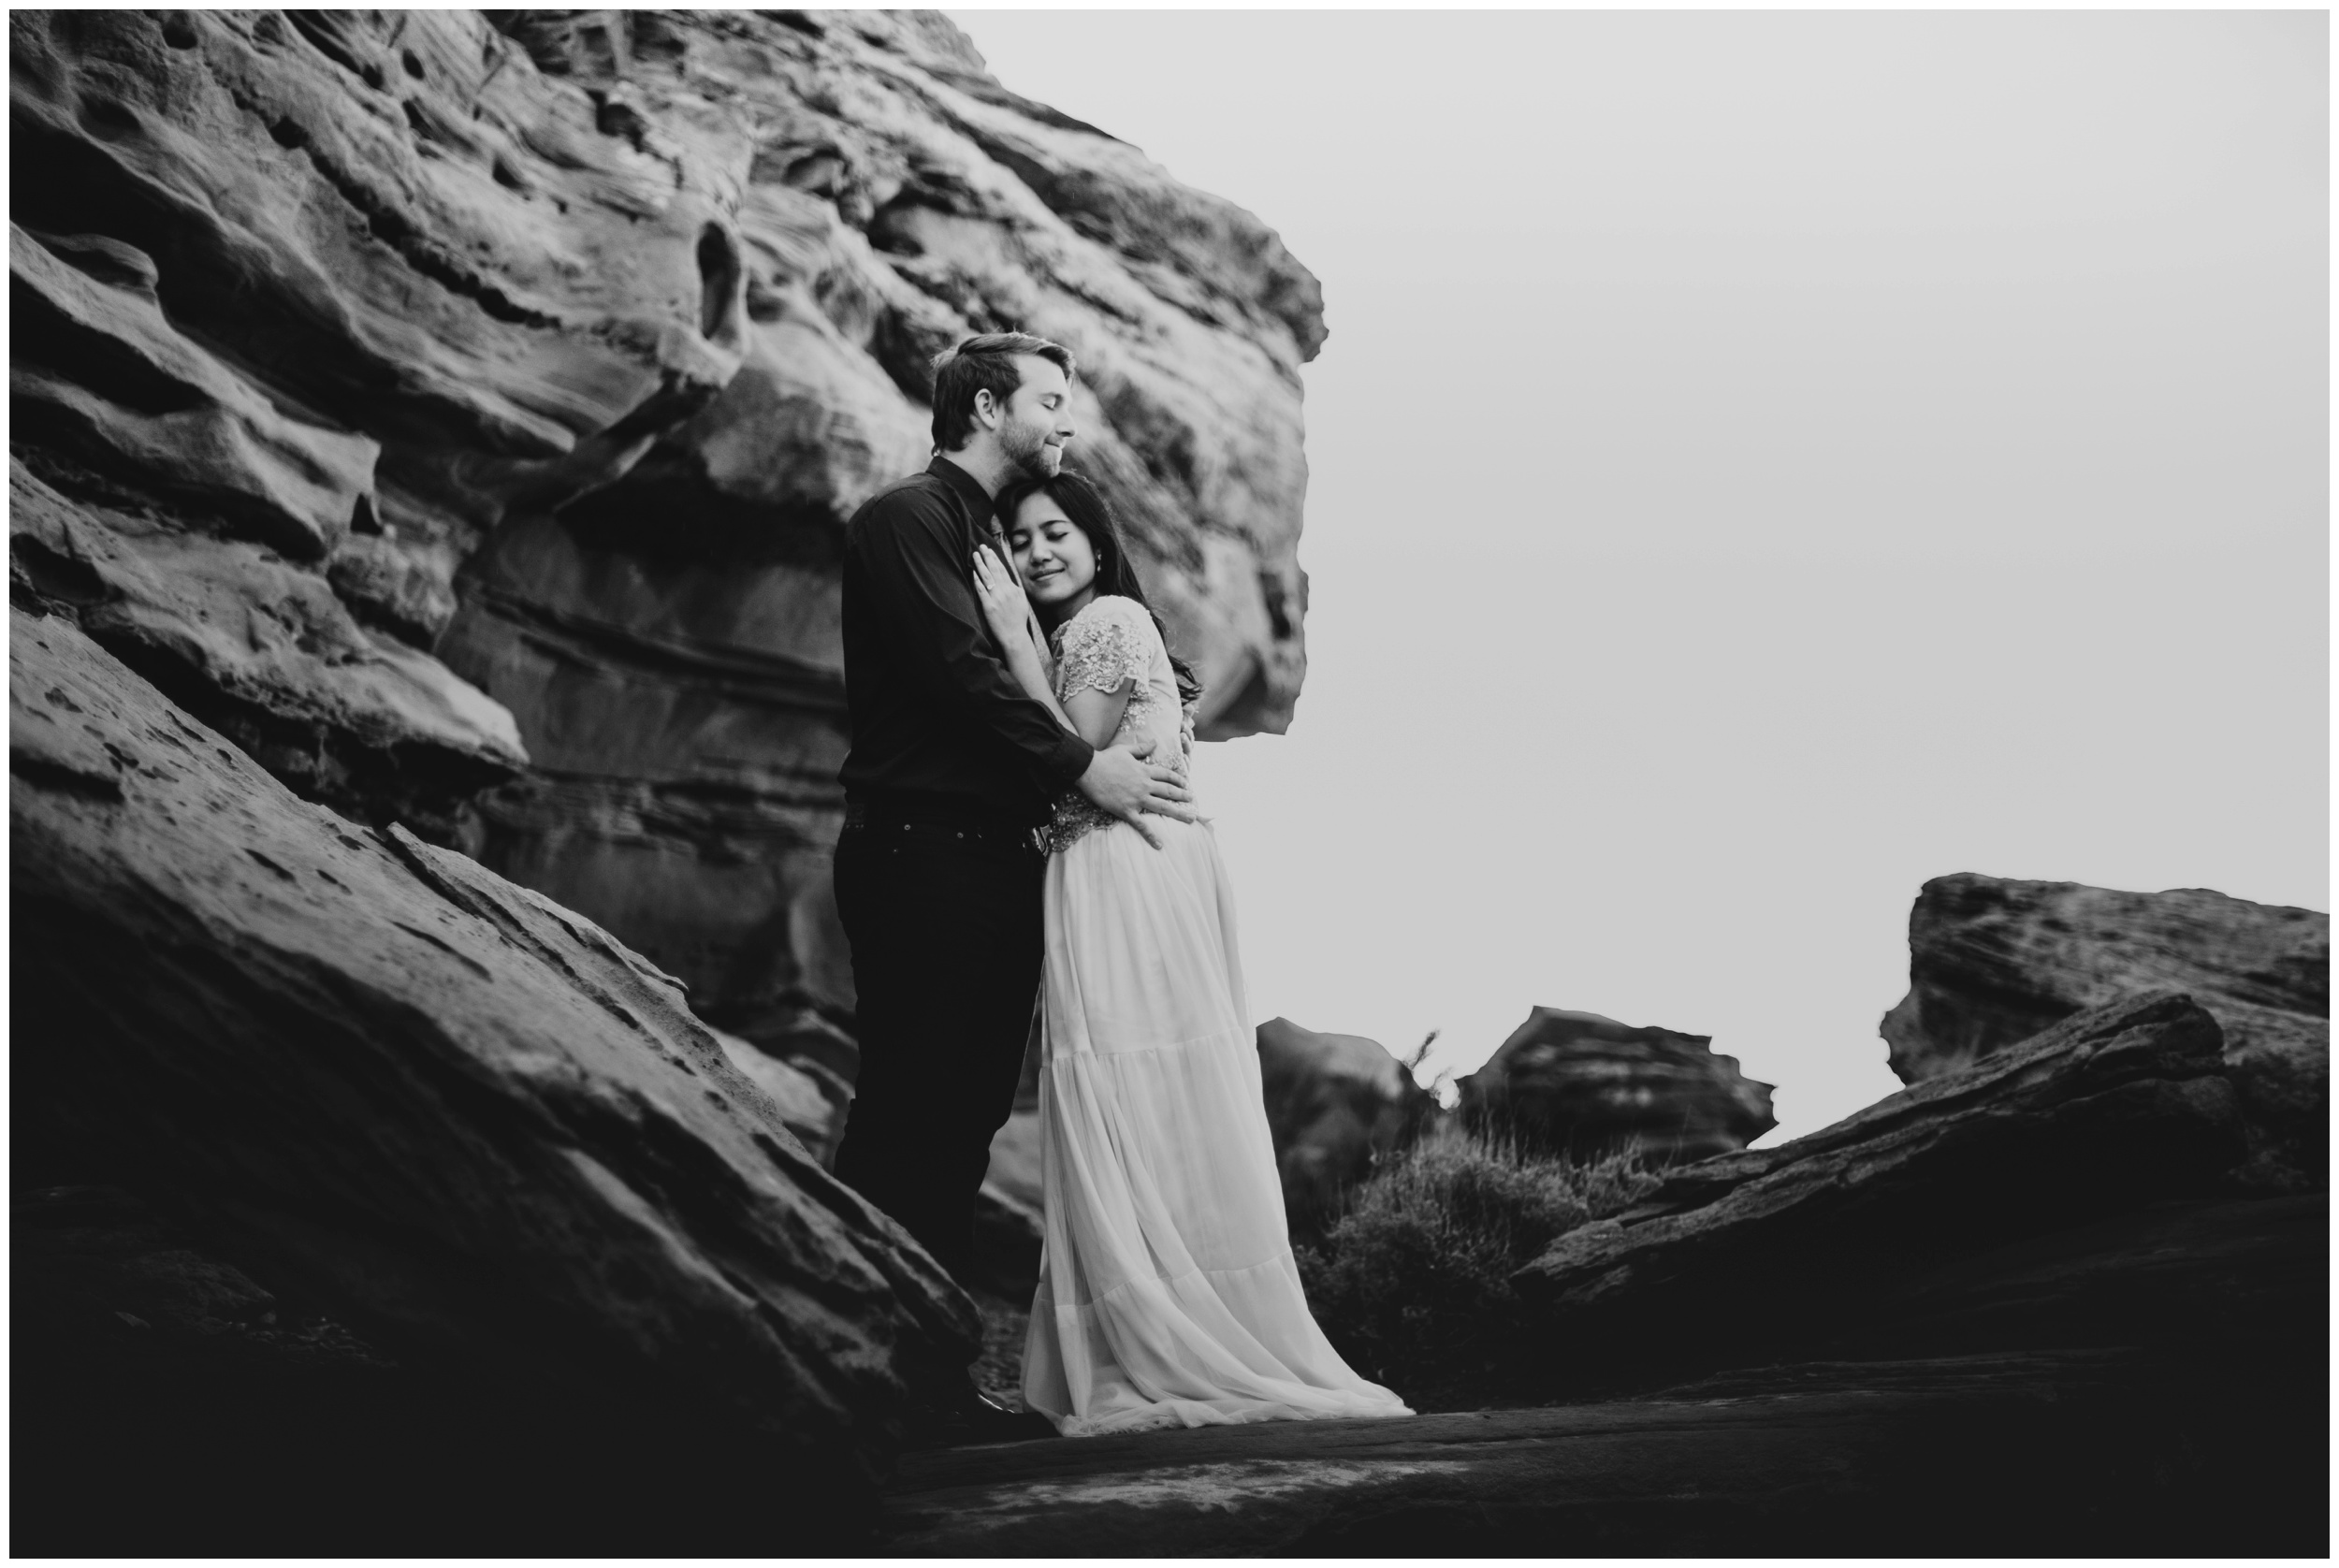 emotional black and white photo of couple holding each other at Dead Horse Point State Park | Elopement Photographer www.riversandroadsphotography.com